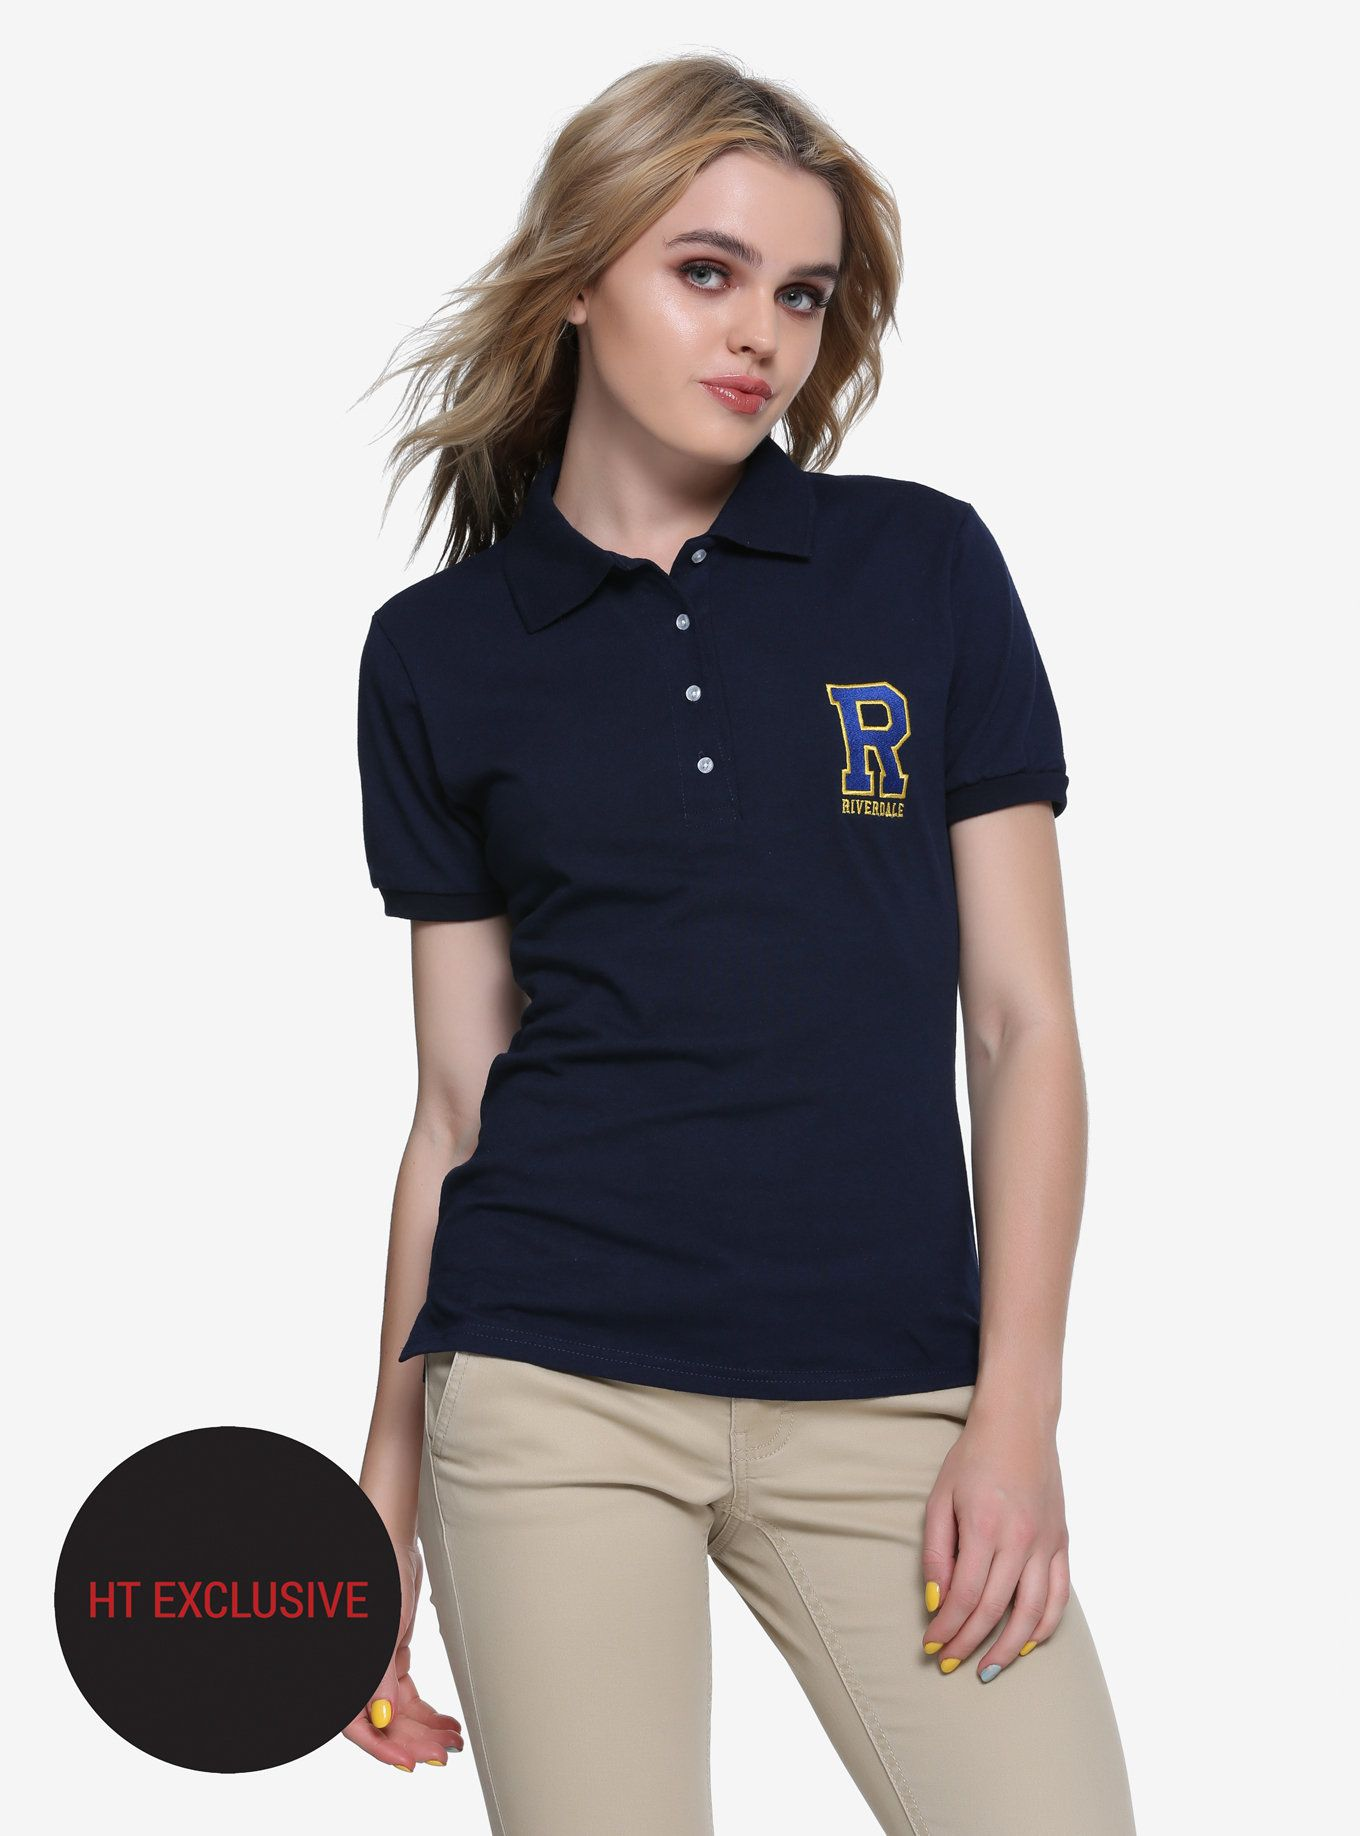 ecf27862 Riverdale Logo Girls Polo Shirt Hot Topic Exclusive | Pin of the Day ...